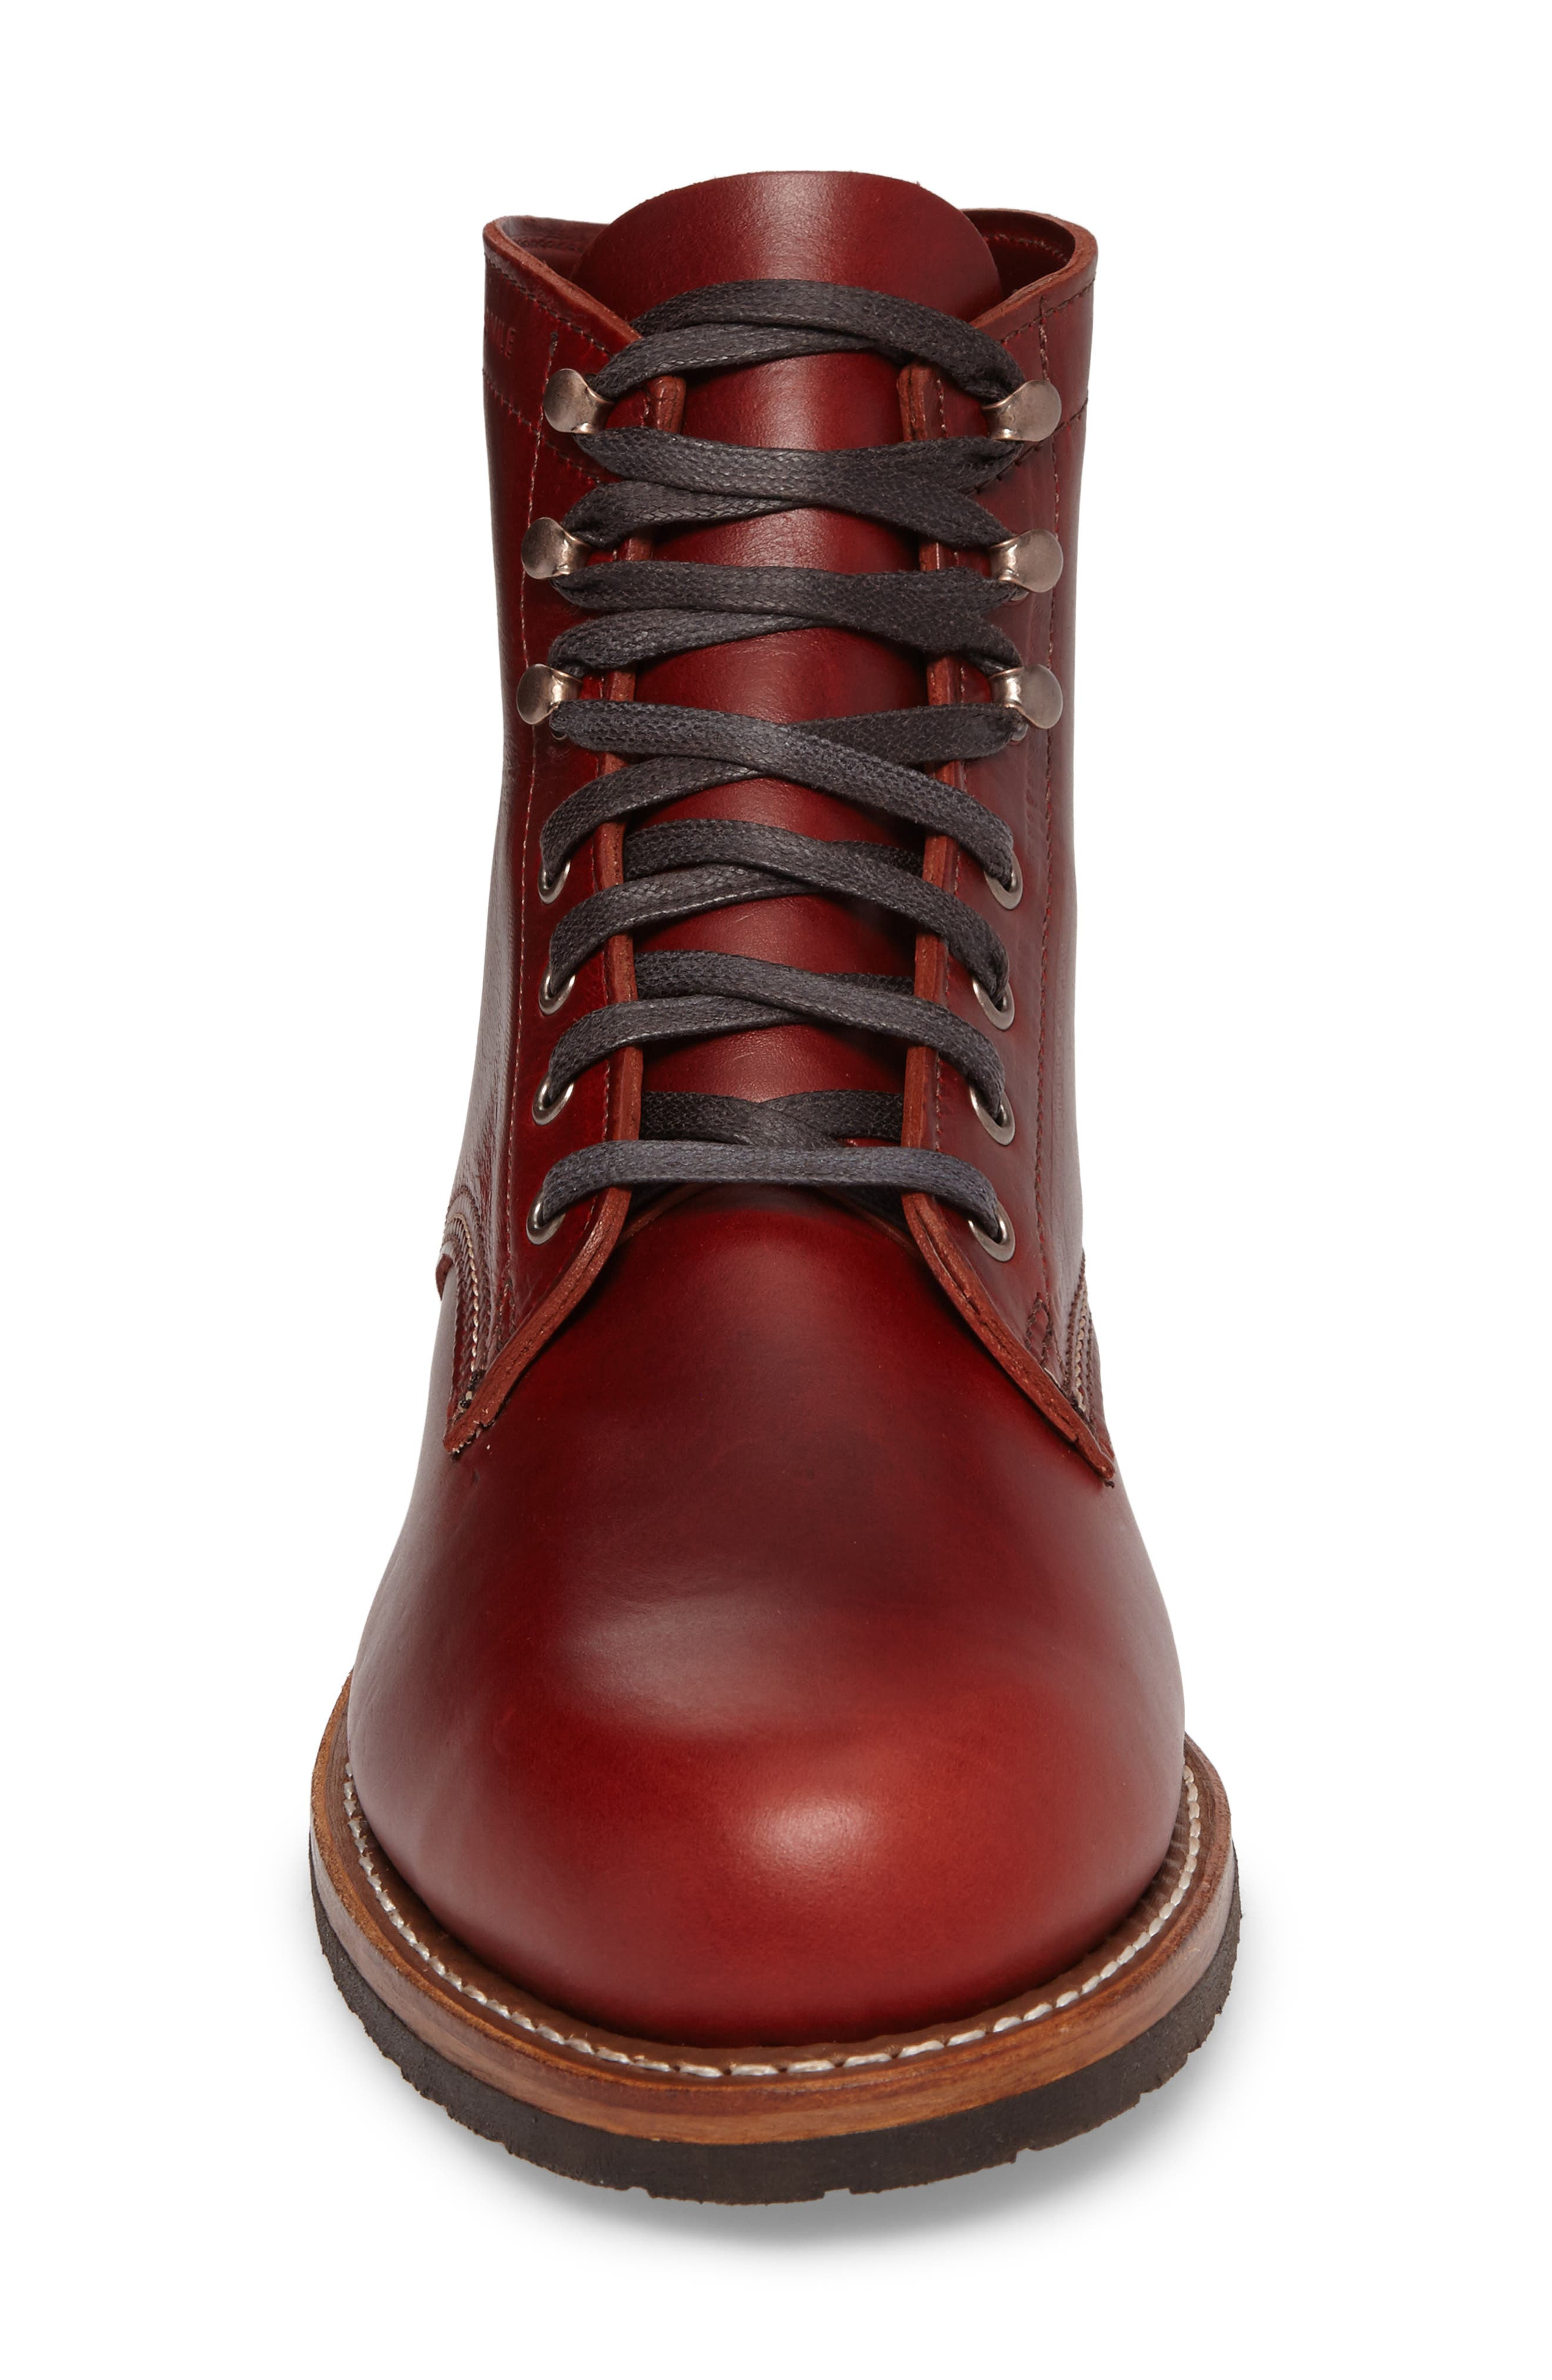 Evans Plain Toe Boot,                             Alternate thumbnail 4, color,                             Red Leather